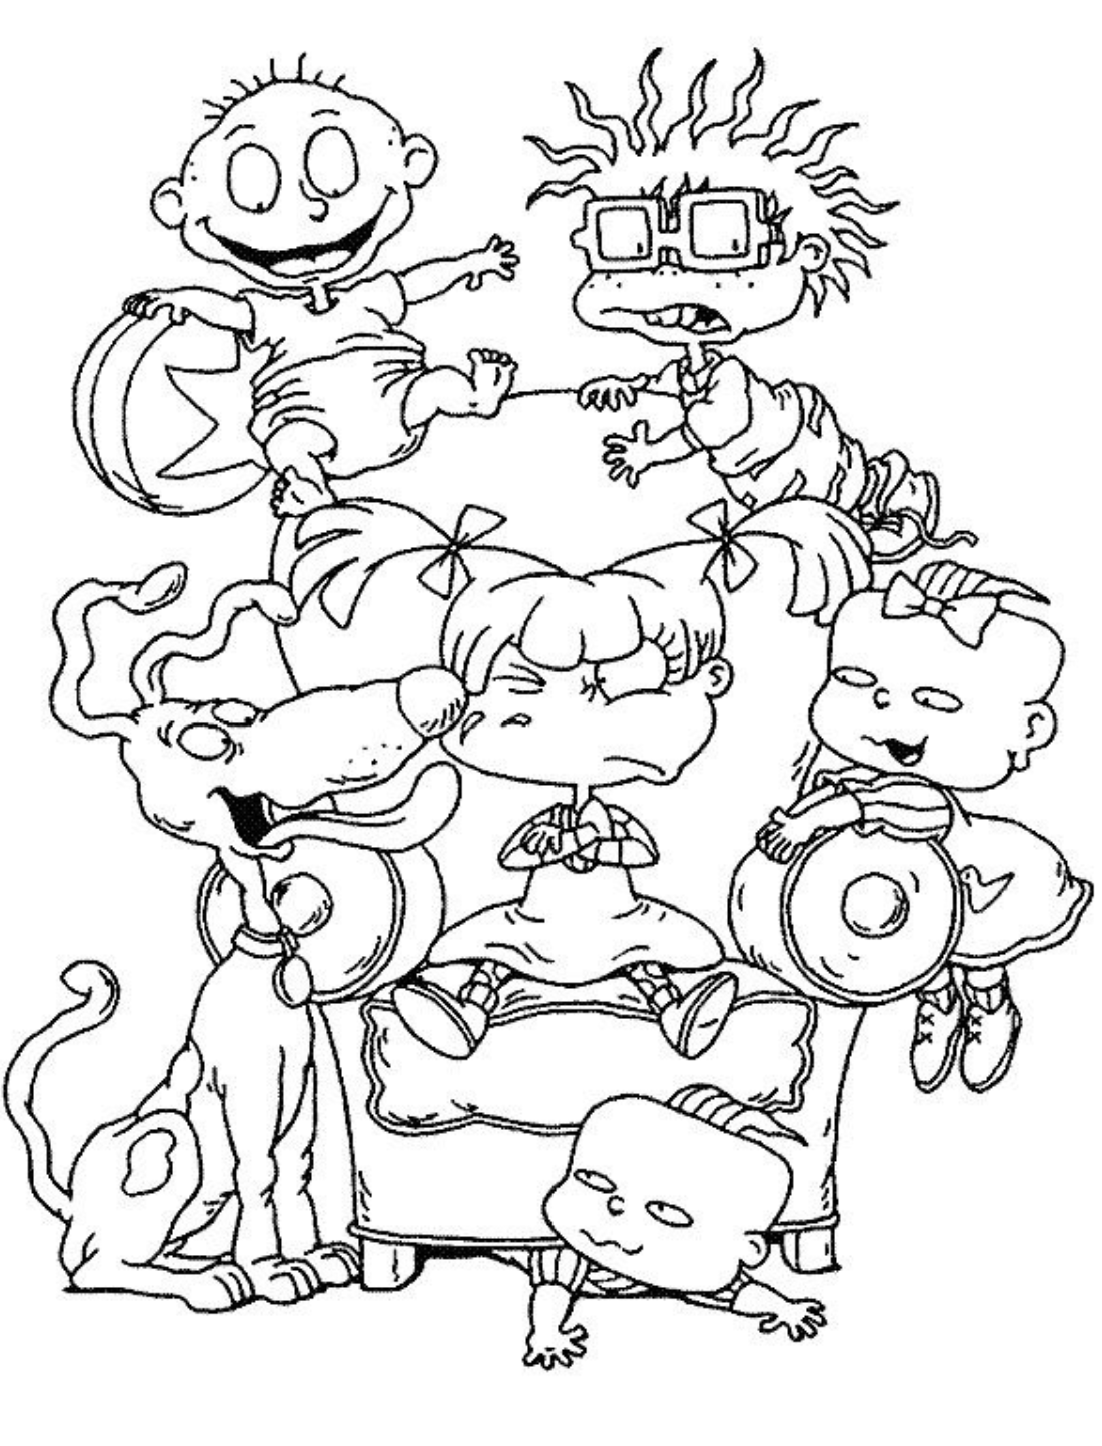 Rugrats Coloring Page Cartoon Coloring Pages Cute Coloring Pages Coloring Pages For Kids